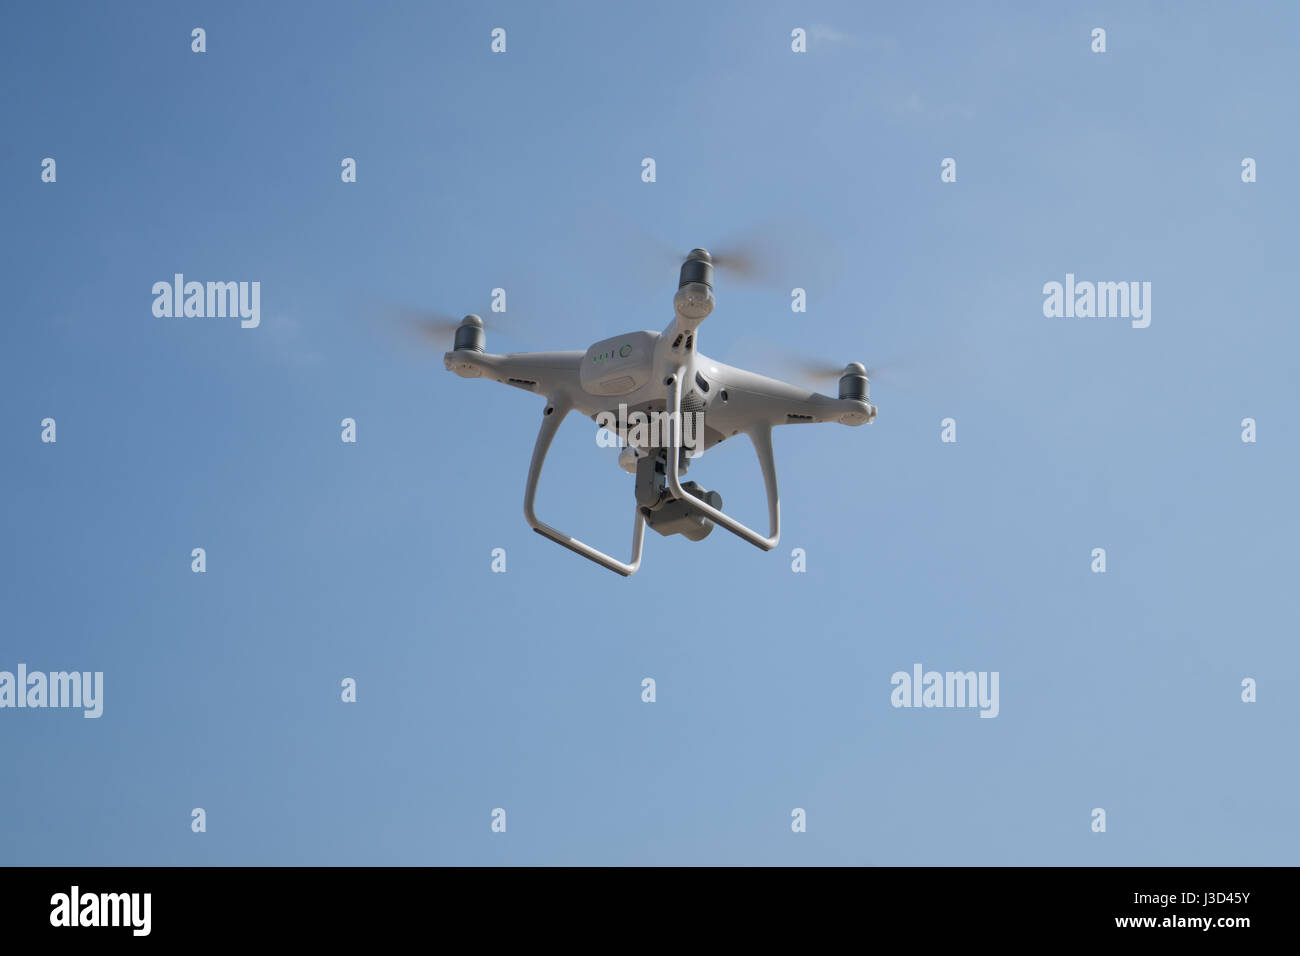 Flying drone with blue sky background controlled by